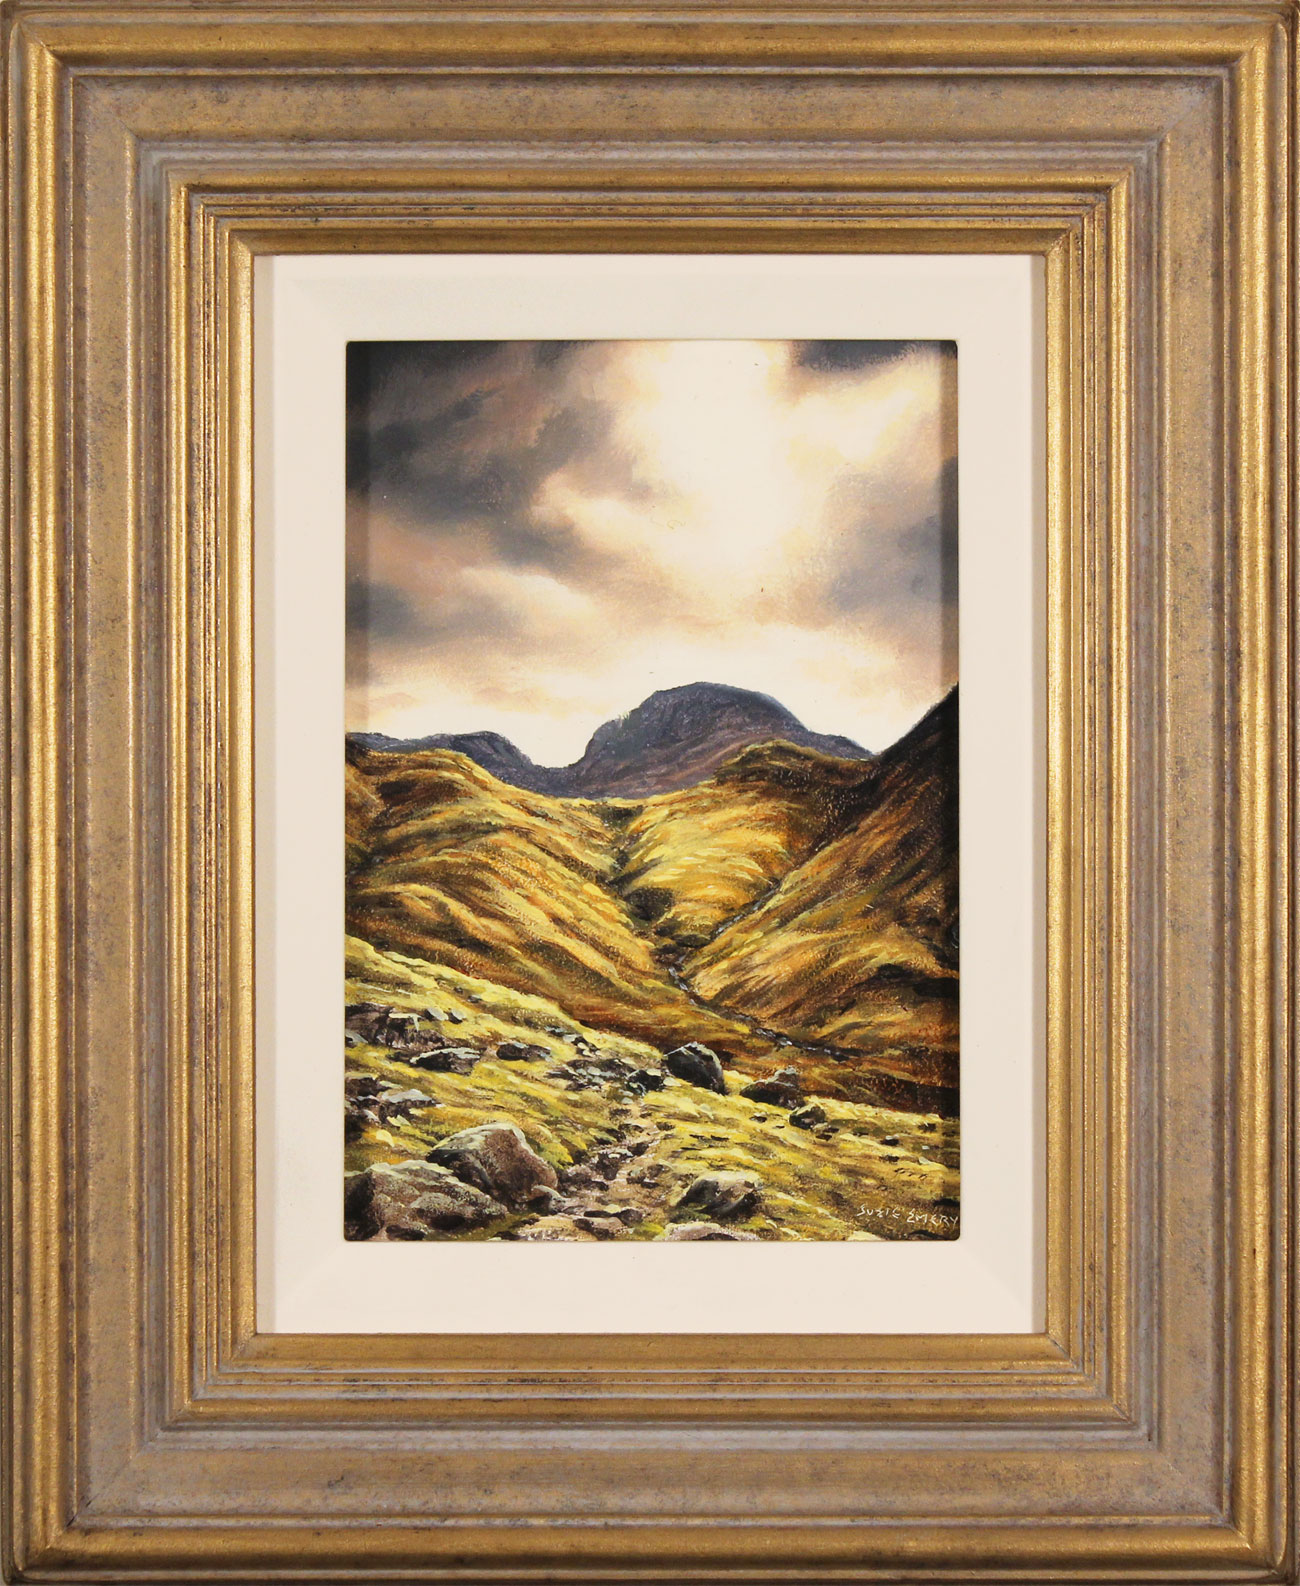 Suzie Emery, Original oil painting on panel, Ennerdale, The Lake District. Click to enlarge